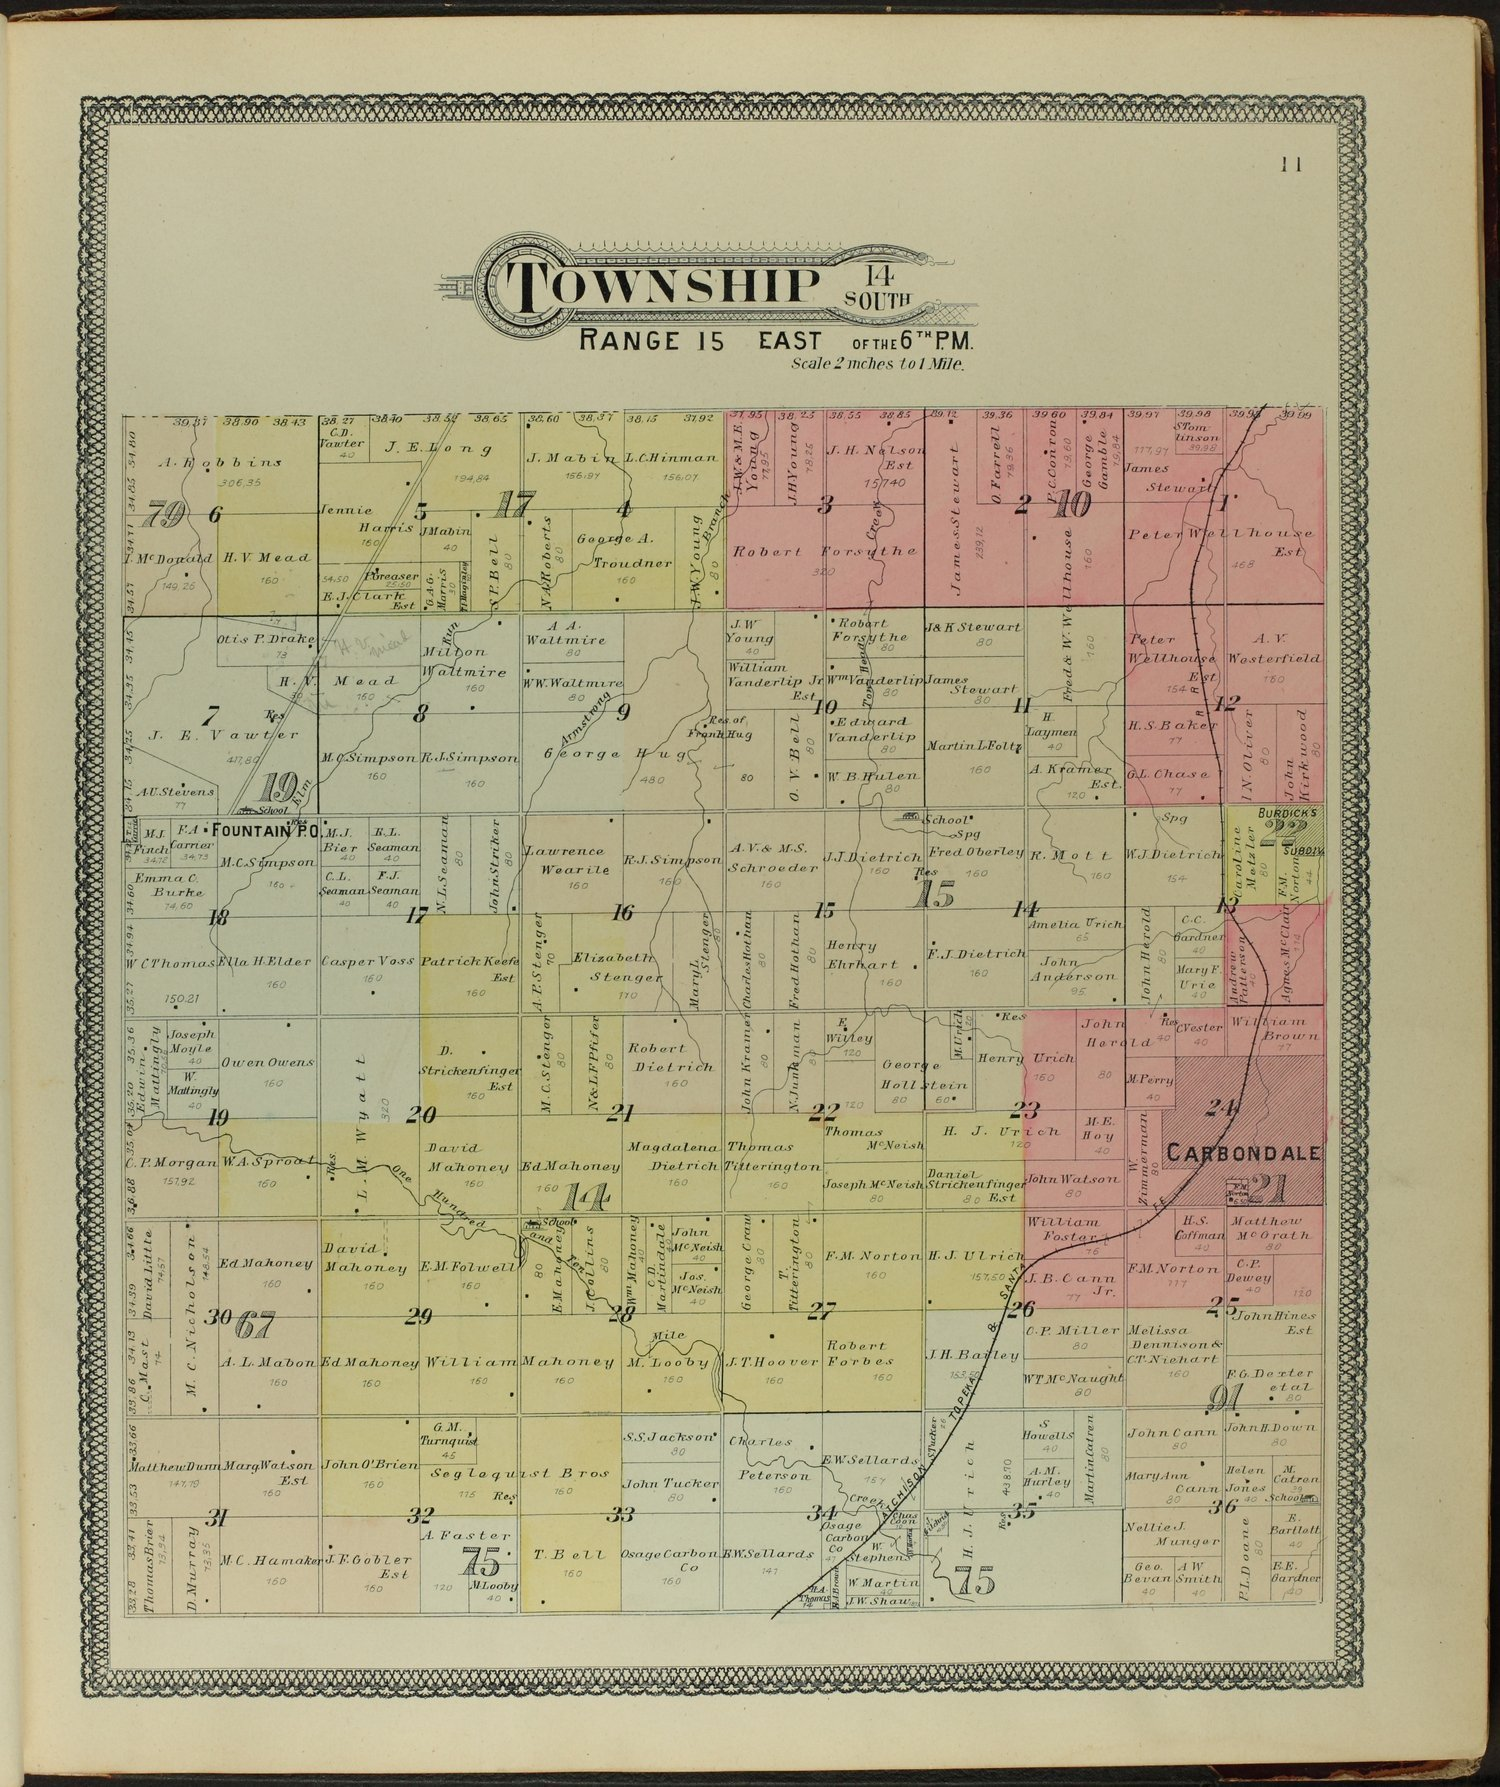 Descriptive atlas of Osage County, Kansas - 11